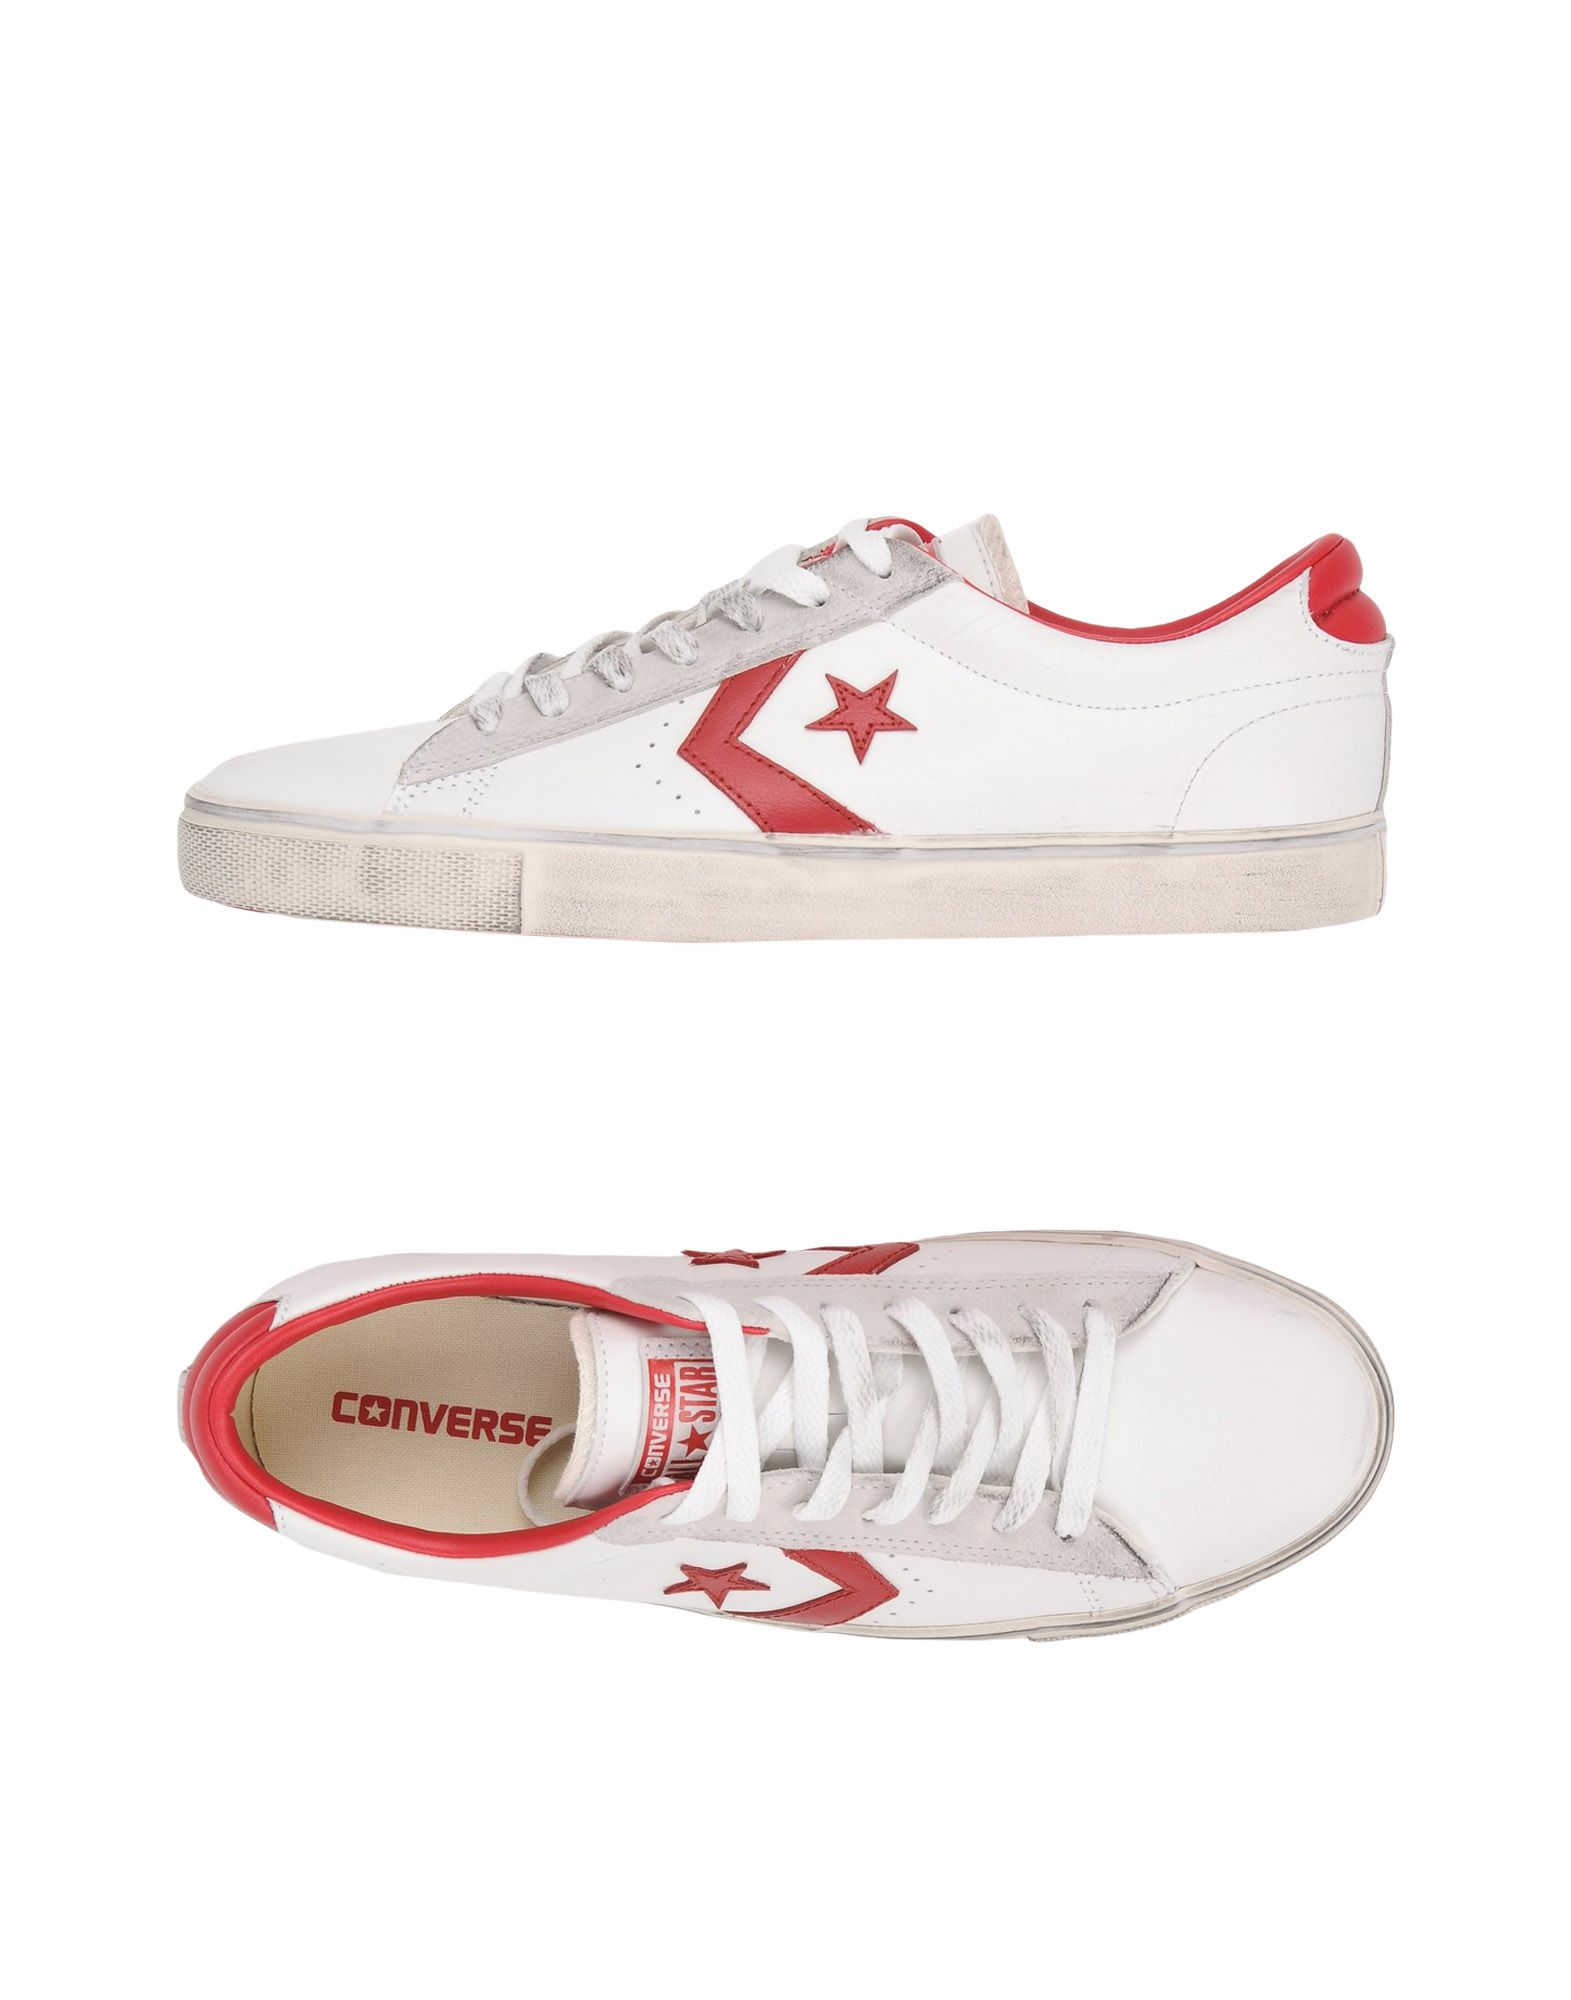 Converse All Star Pro Leather Vulc Ox - Leather Distressed - Sneakers - Ox Men Converse All Star Sneakers online on  United Kingdom - 11437531GG 1e7e62